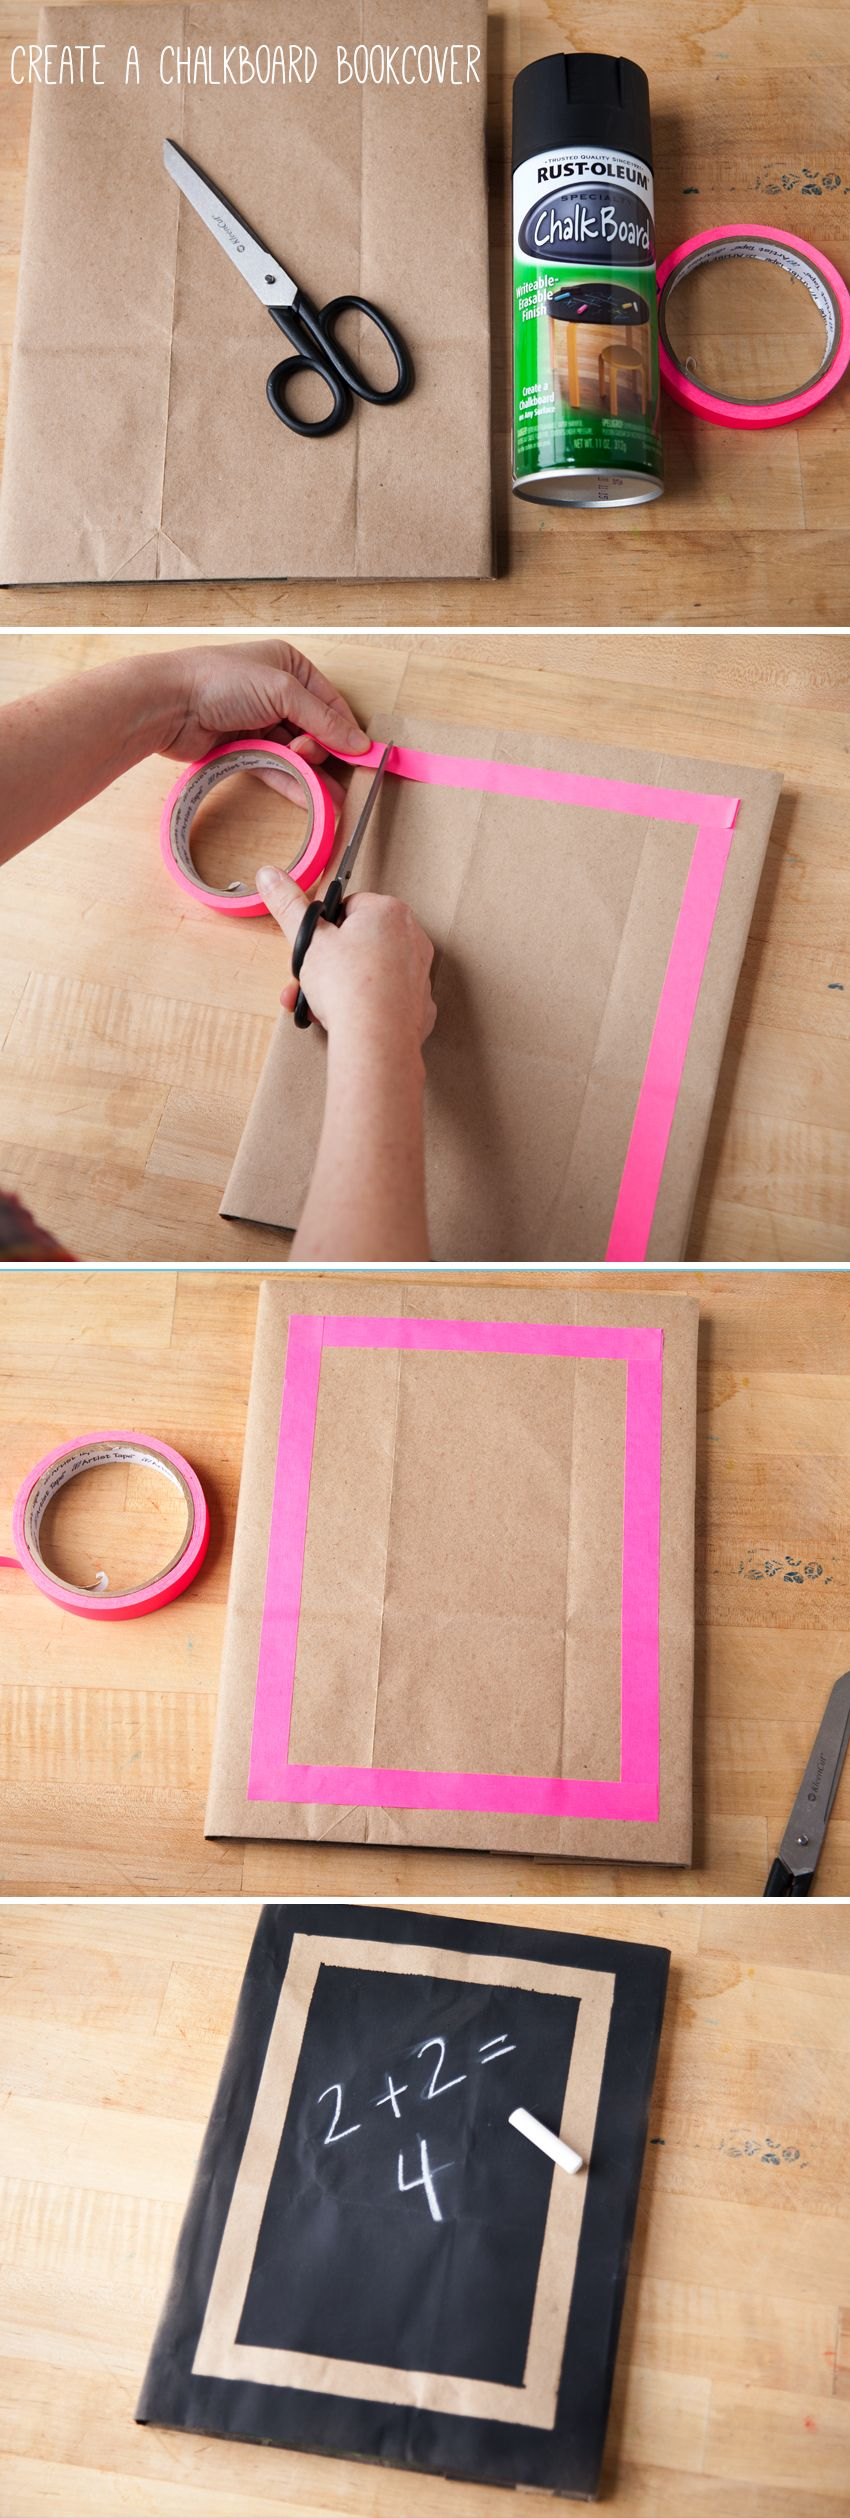 Book Cover School Near Me ~ Make a chalkboard book cover for back to school this makes